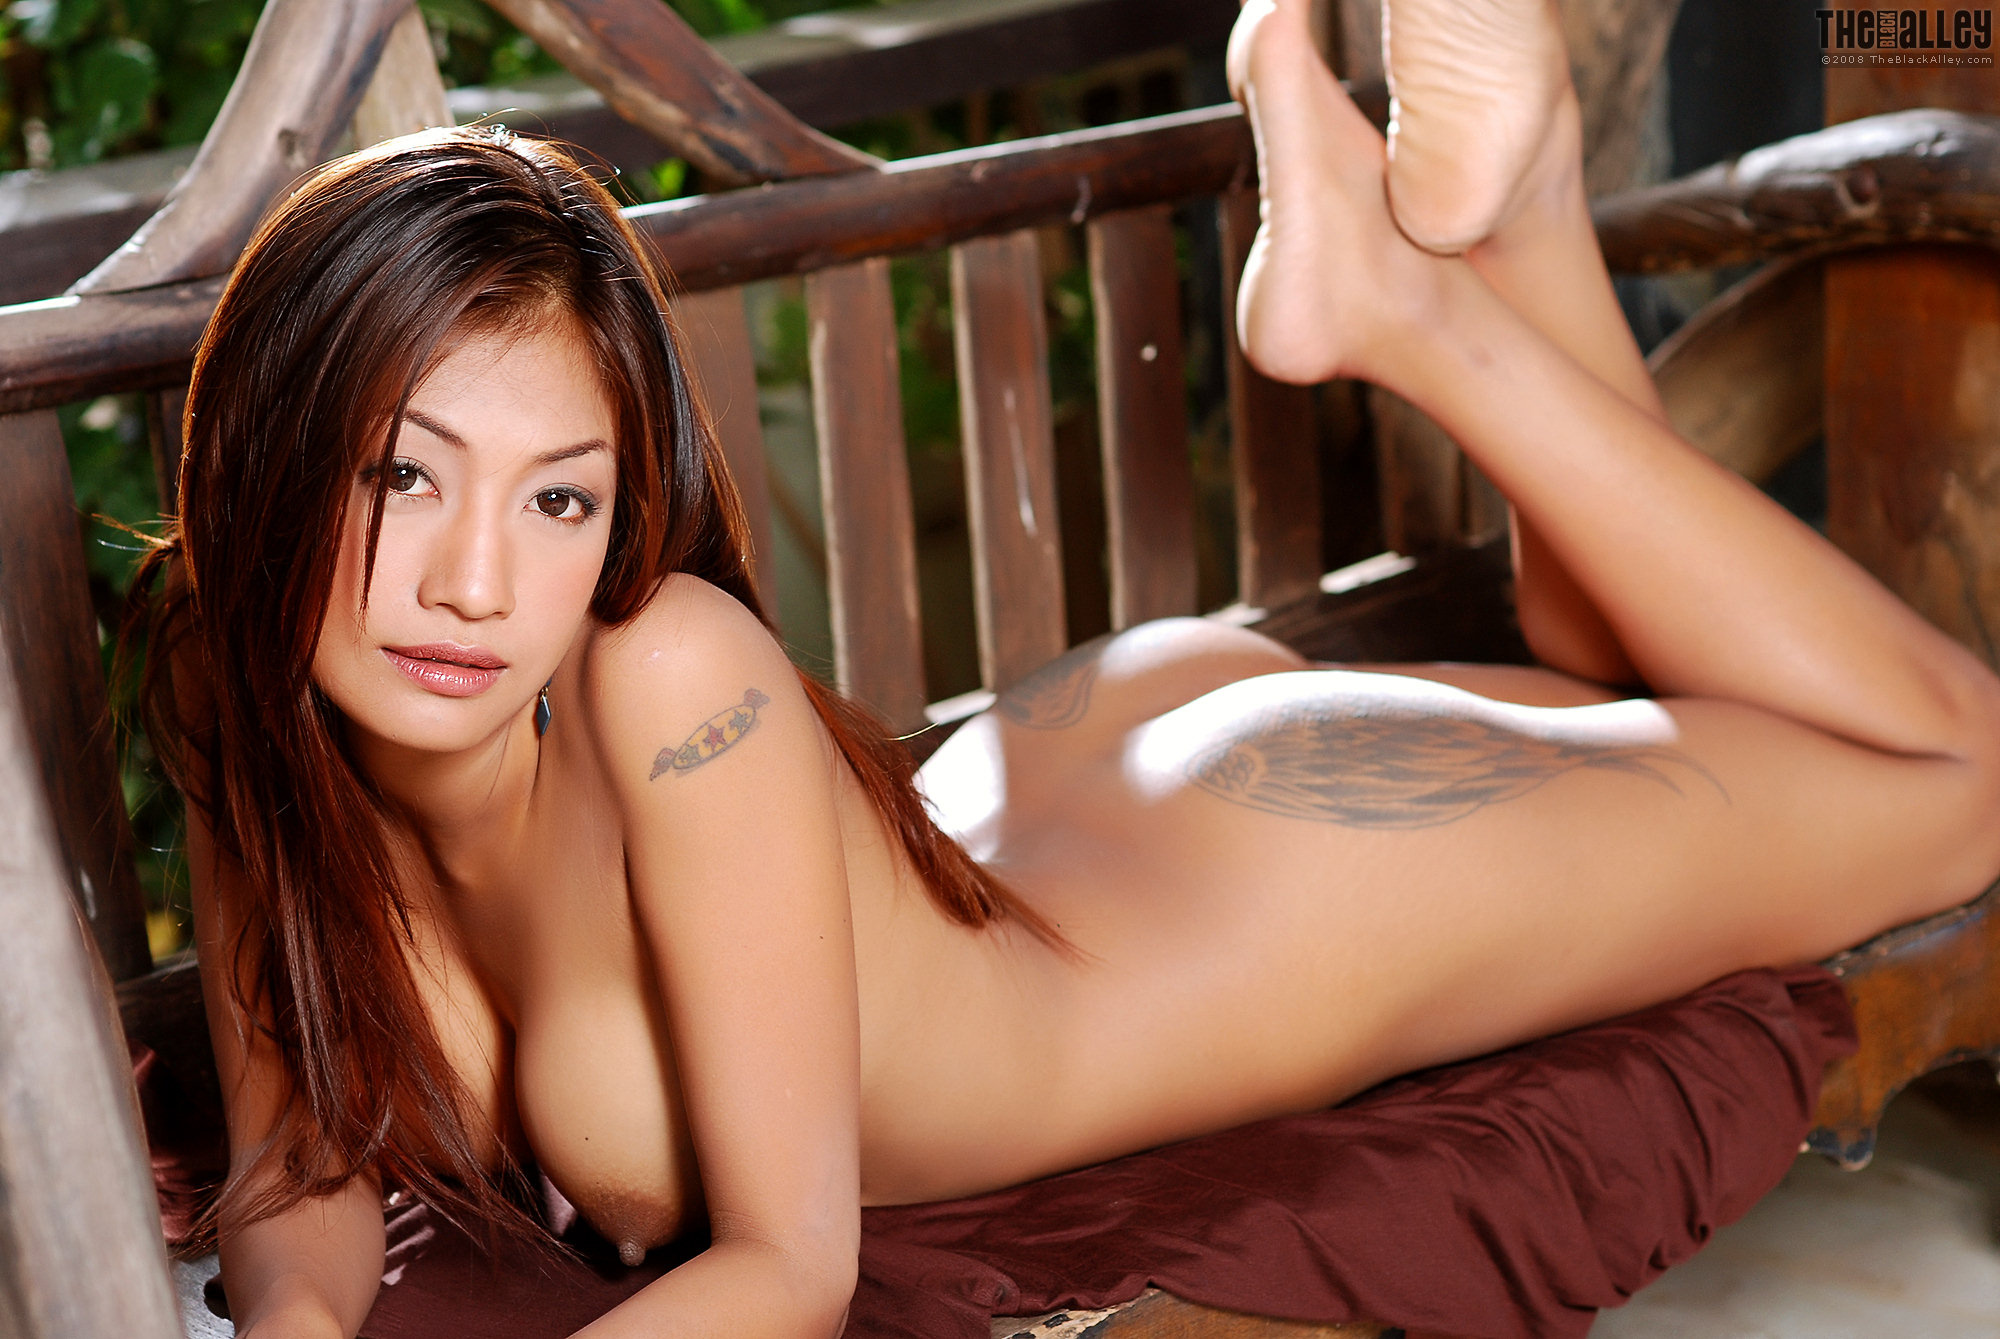 Hot Naked Asian Women With Tattoos